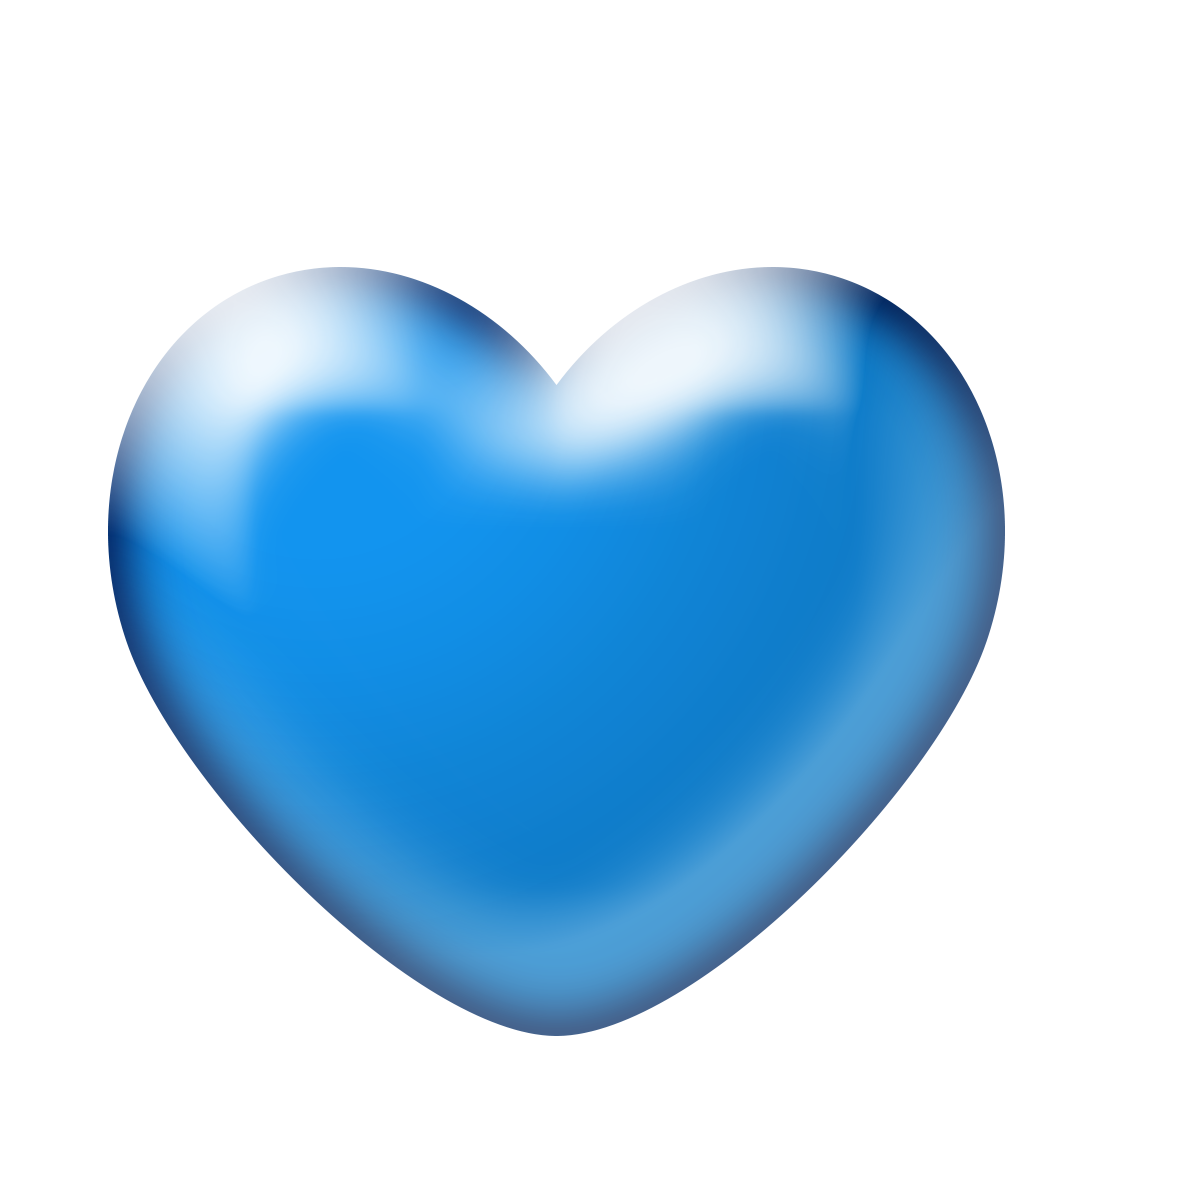 Free Download High Quality 3d Blue Heart Png Transparent Background 3d Heart Without Background Its A Good Quality Shining 3d He Blue Heart Clip Art Love Png